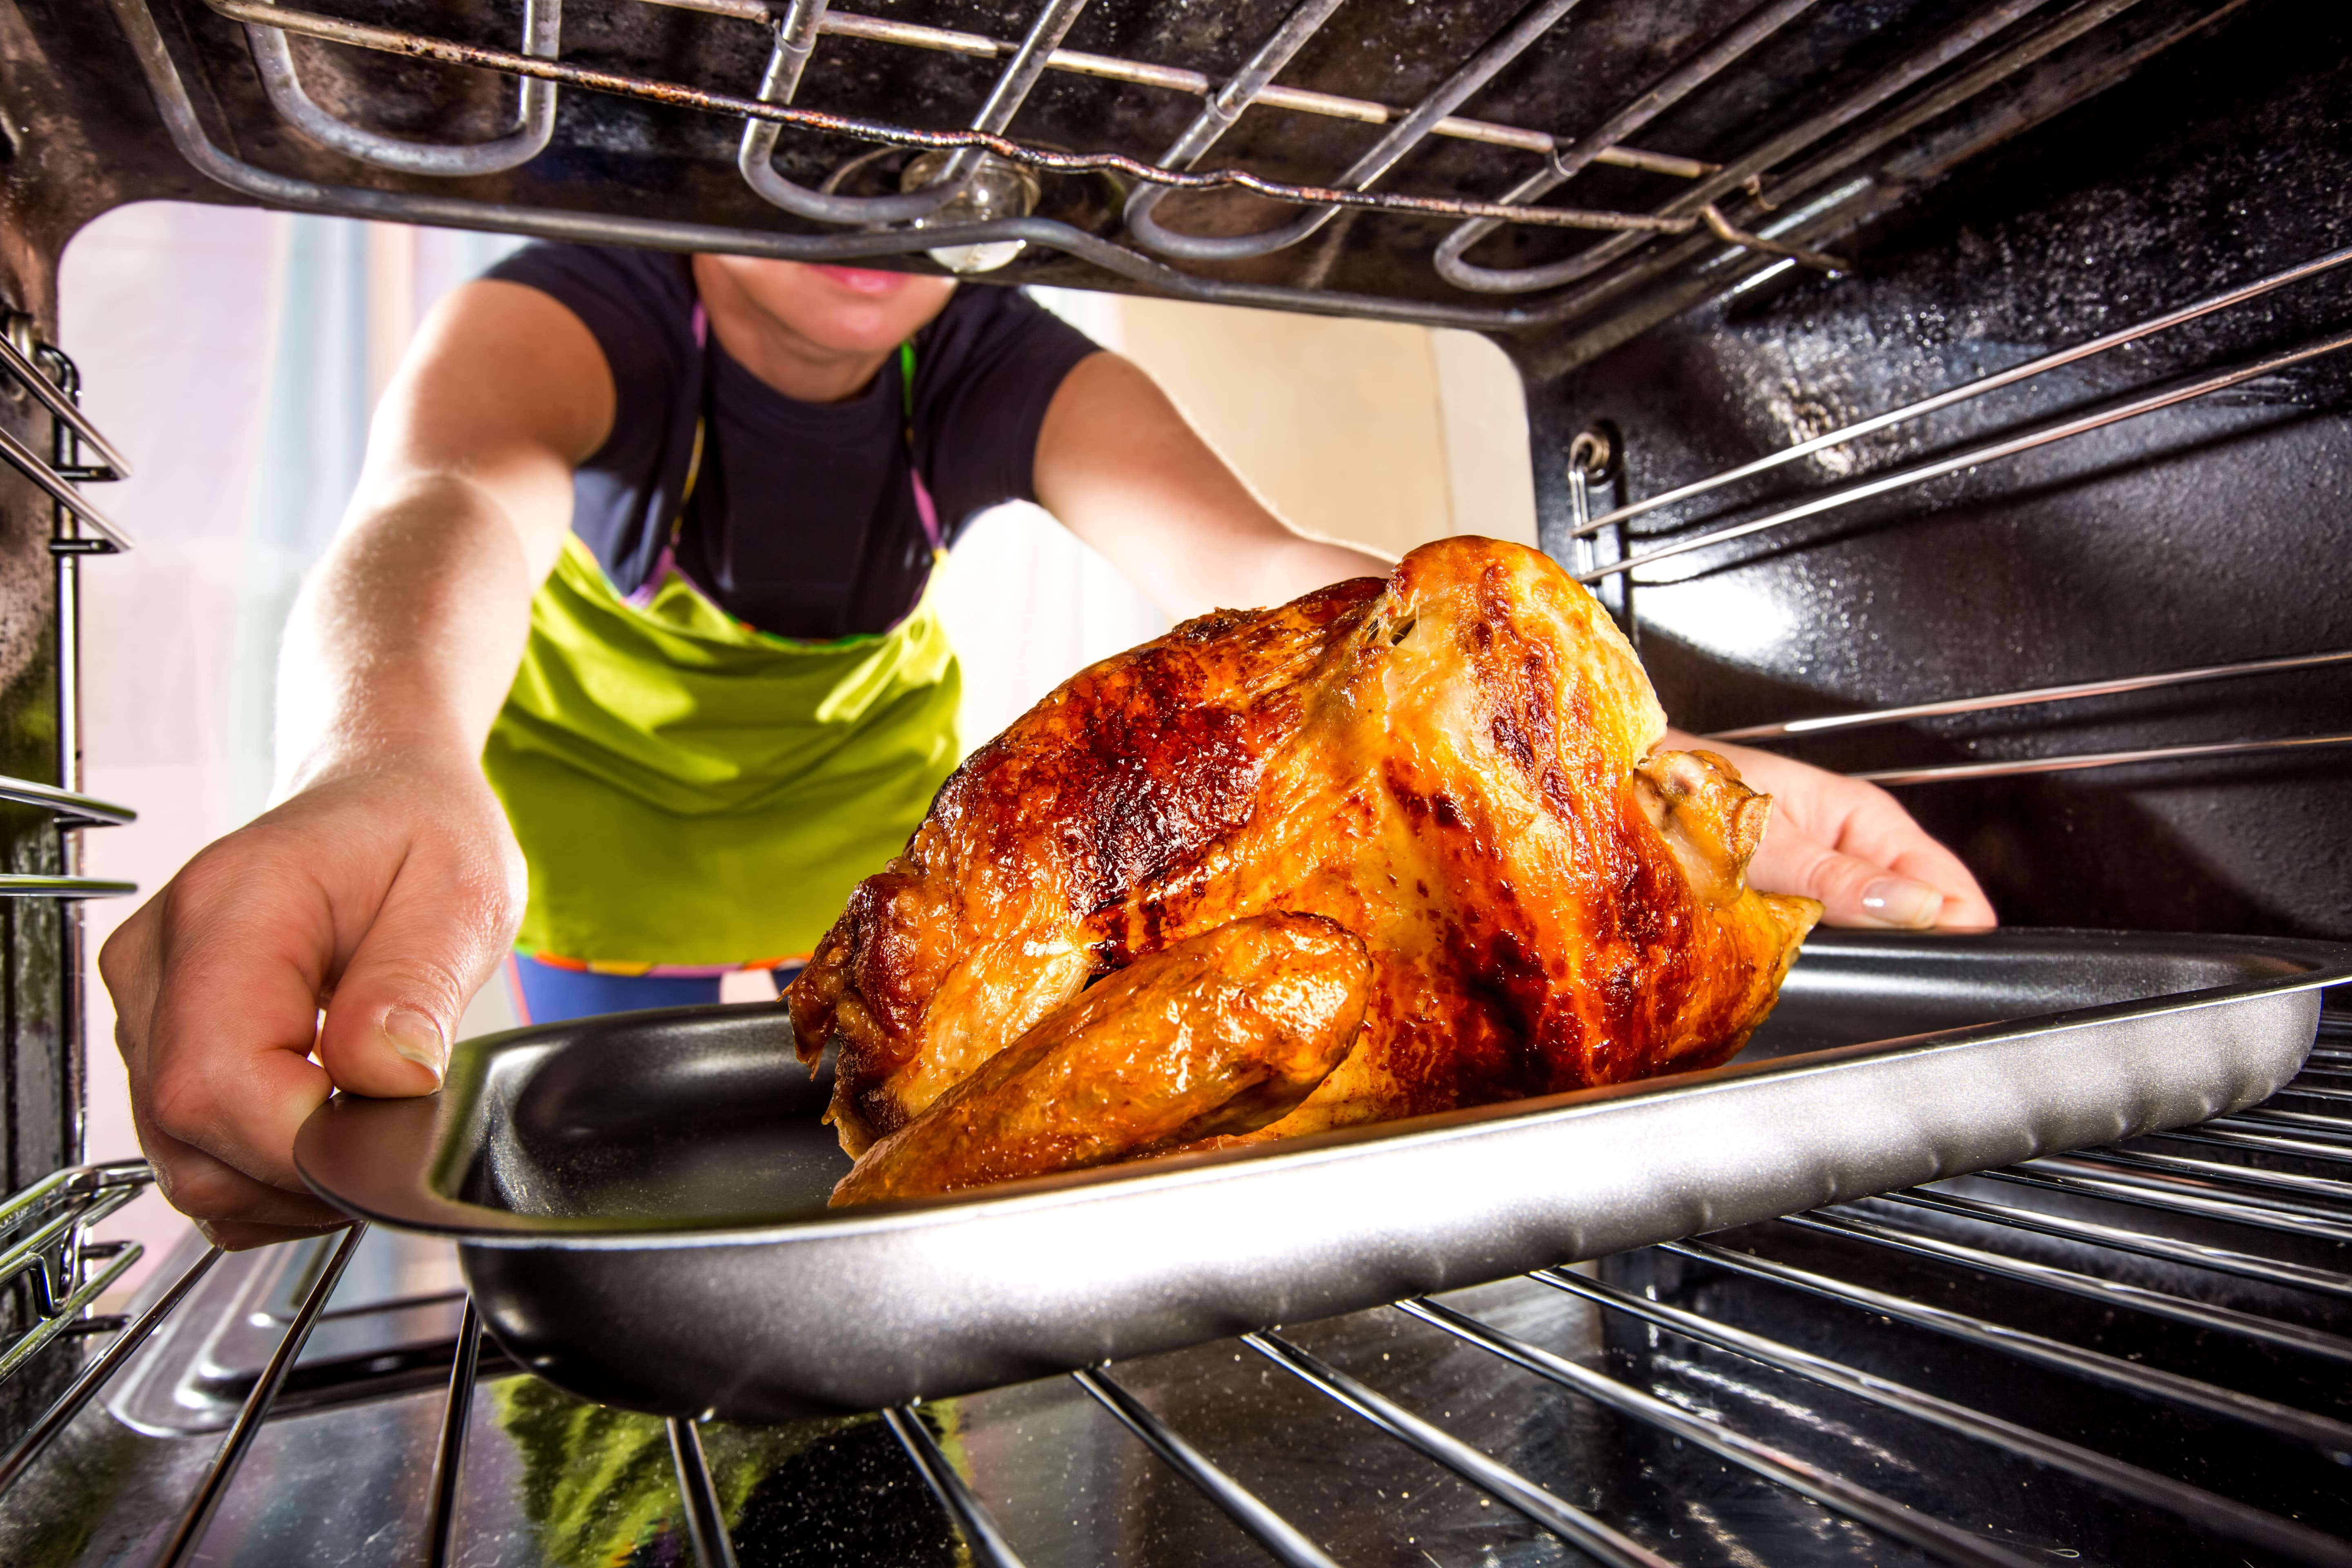 Cooking Safety, Hosting, Thanksgiving, Fall, Holidays, Fire Hazards, Oven, Turkey